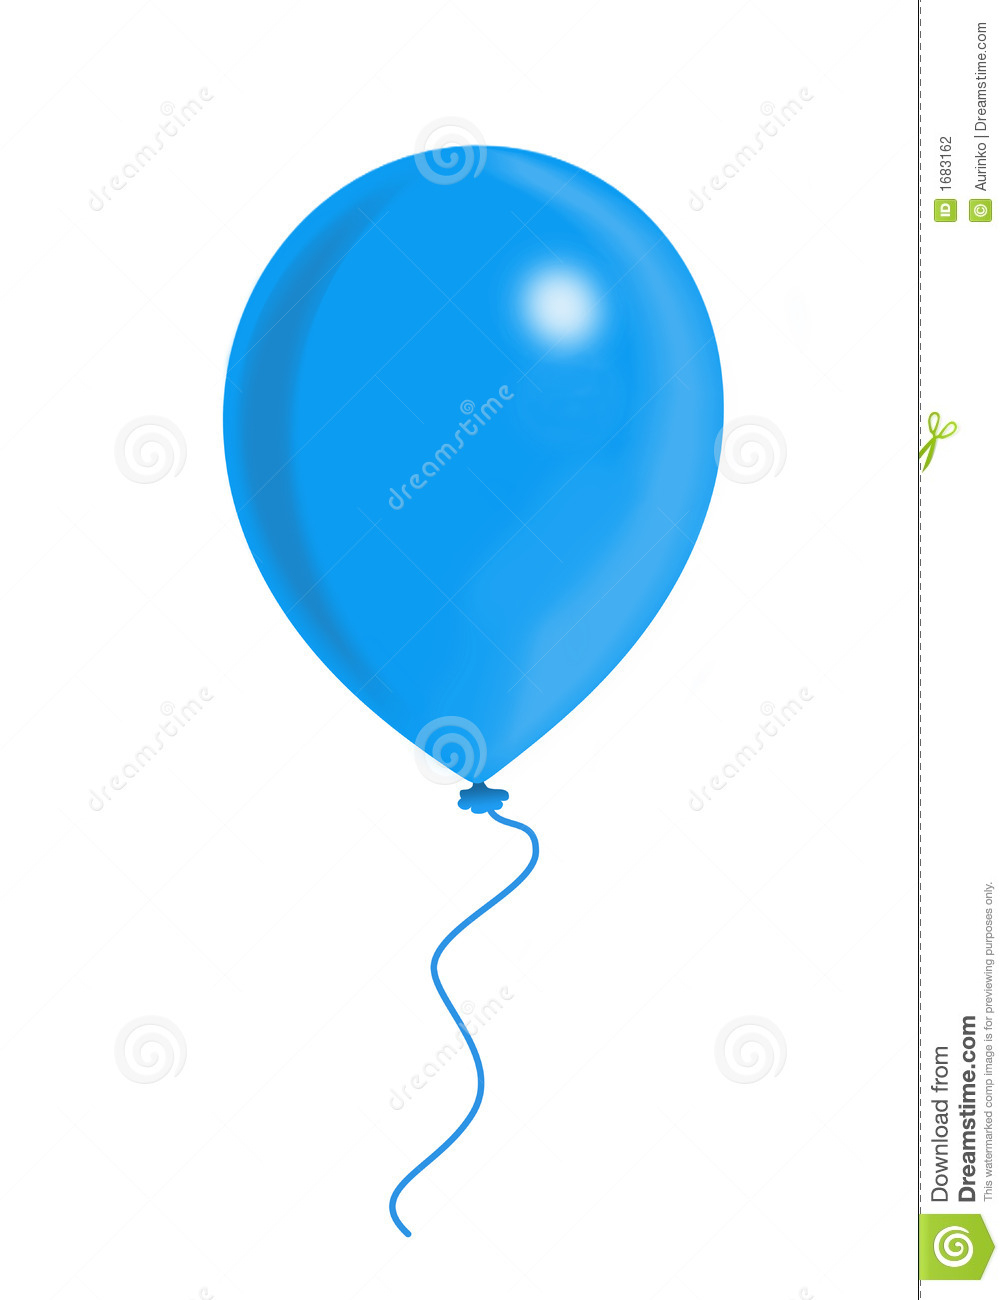 Blue balloon on the white background, balloon series.